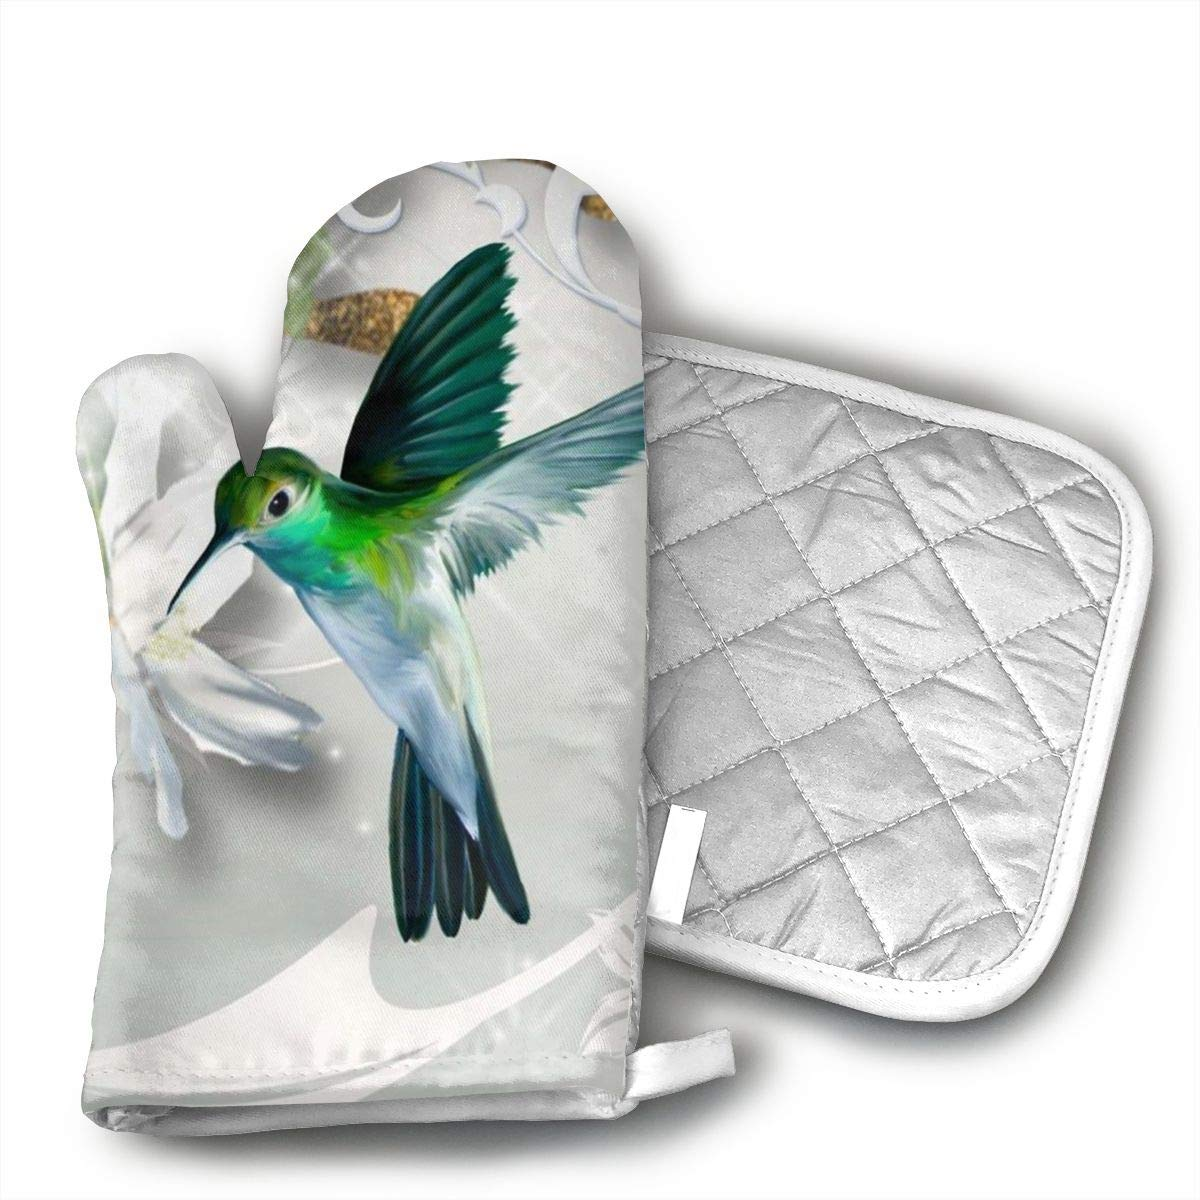 CHWEYAQ Hummingbird Oven Mitts and Pot Holders Set of for Kitchen Set with Cotton Non-Slip Grip